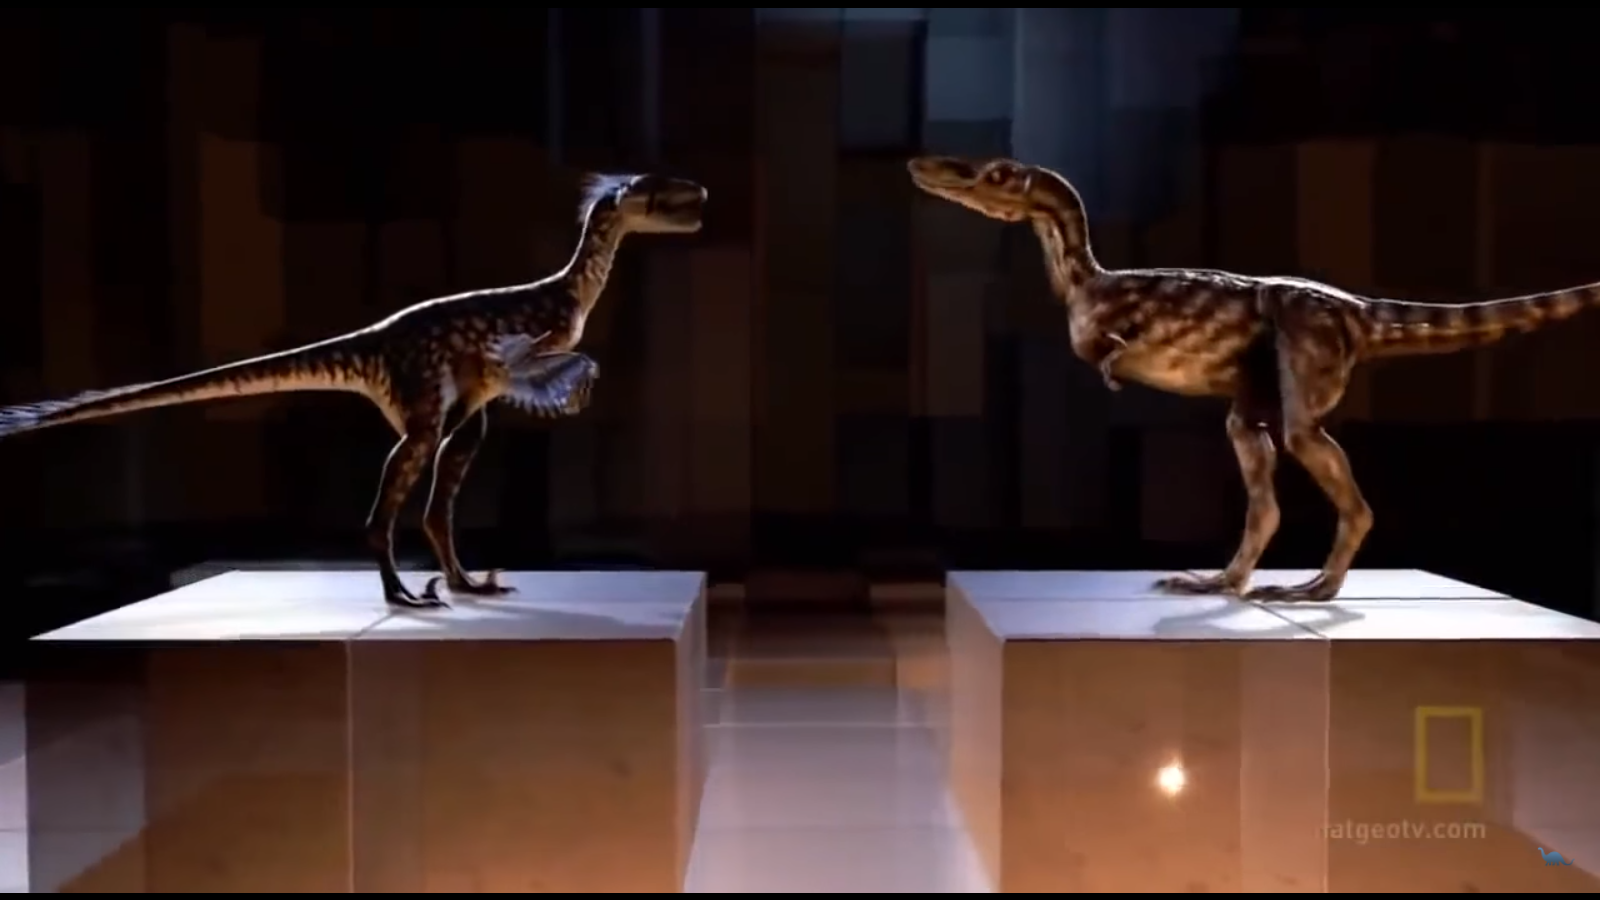 Dakotaraptor_and_young_T-rex.png